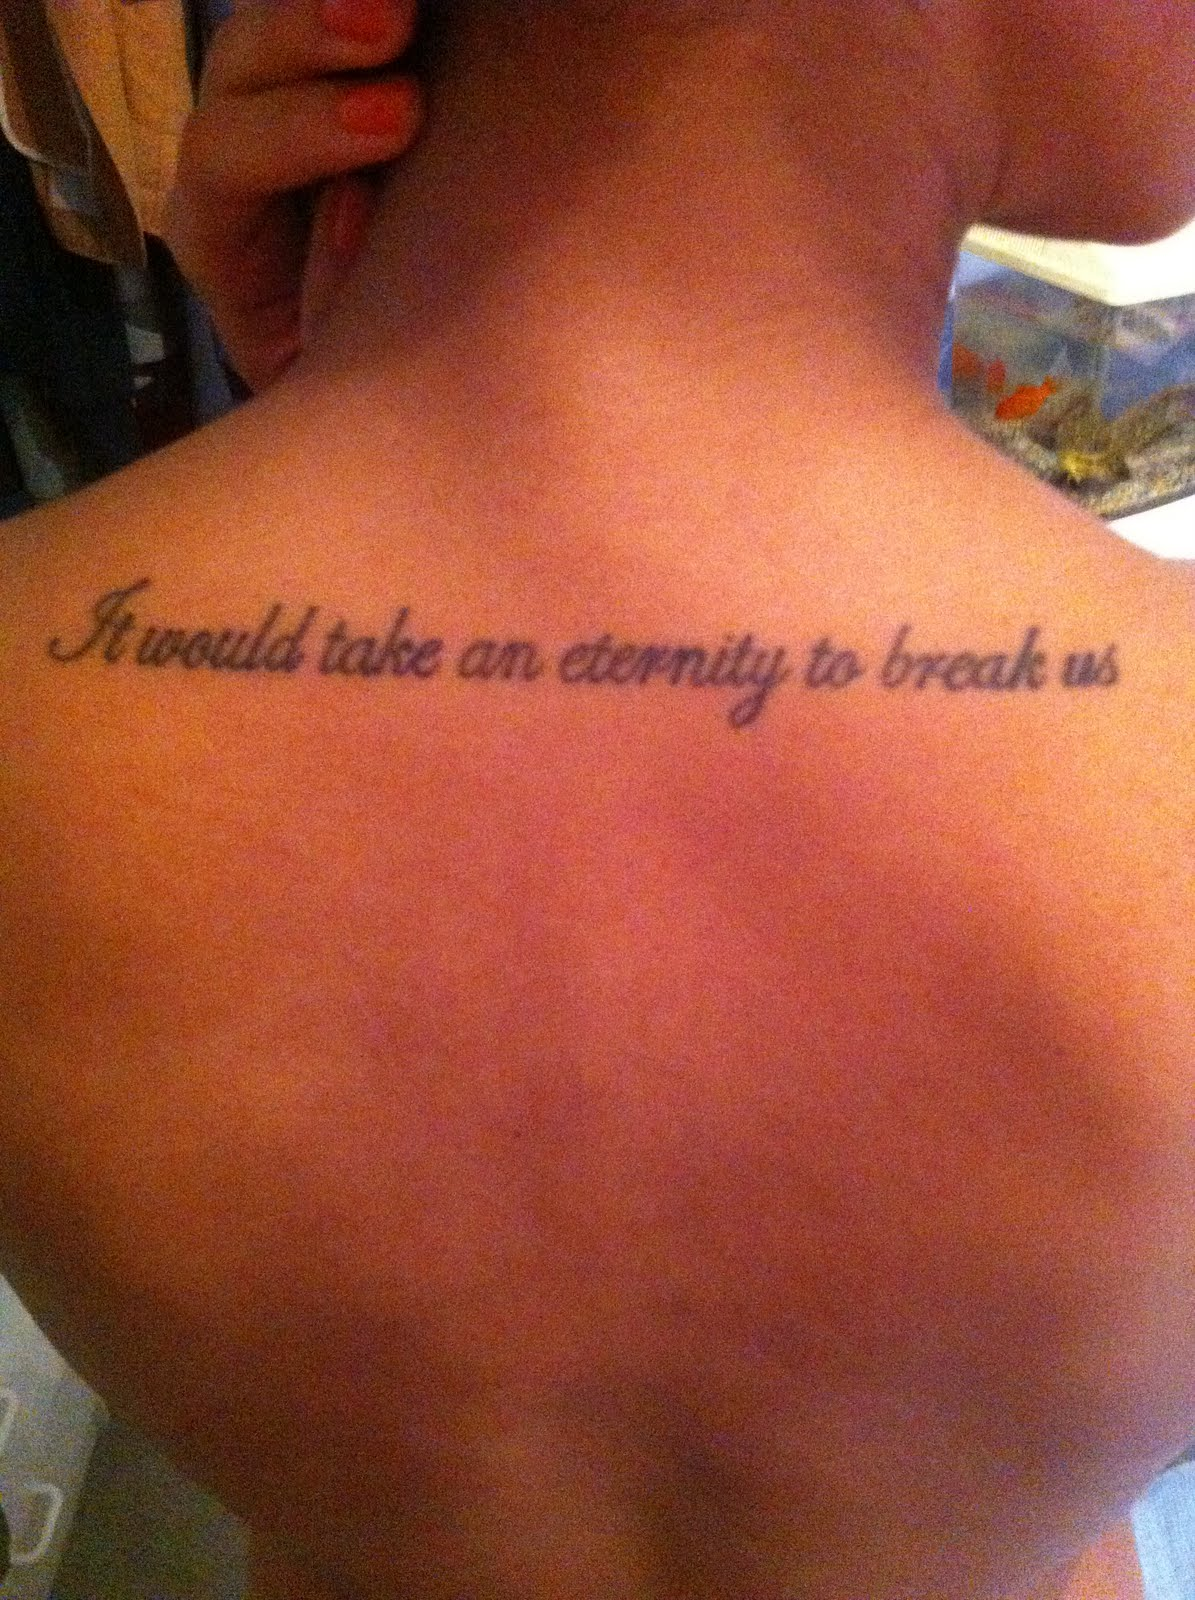 queen lyrics tattoo - photo #4